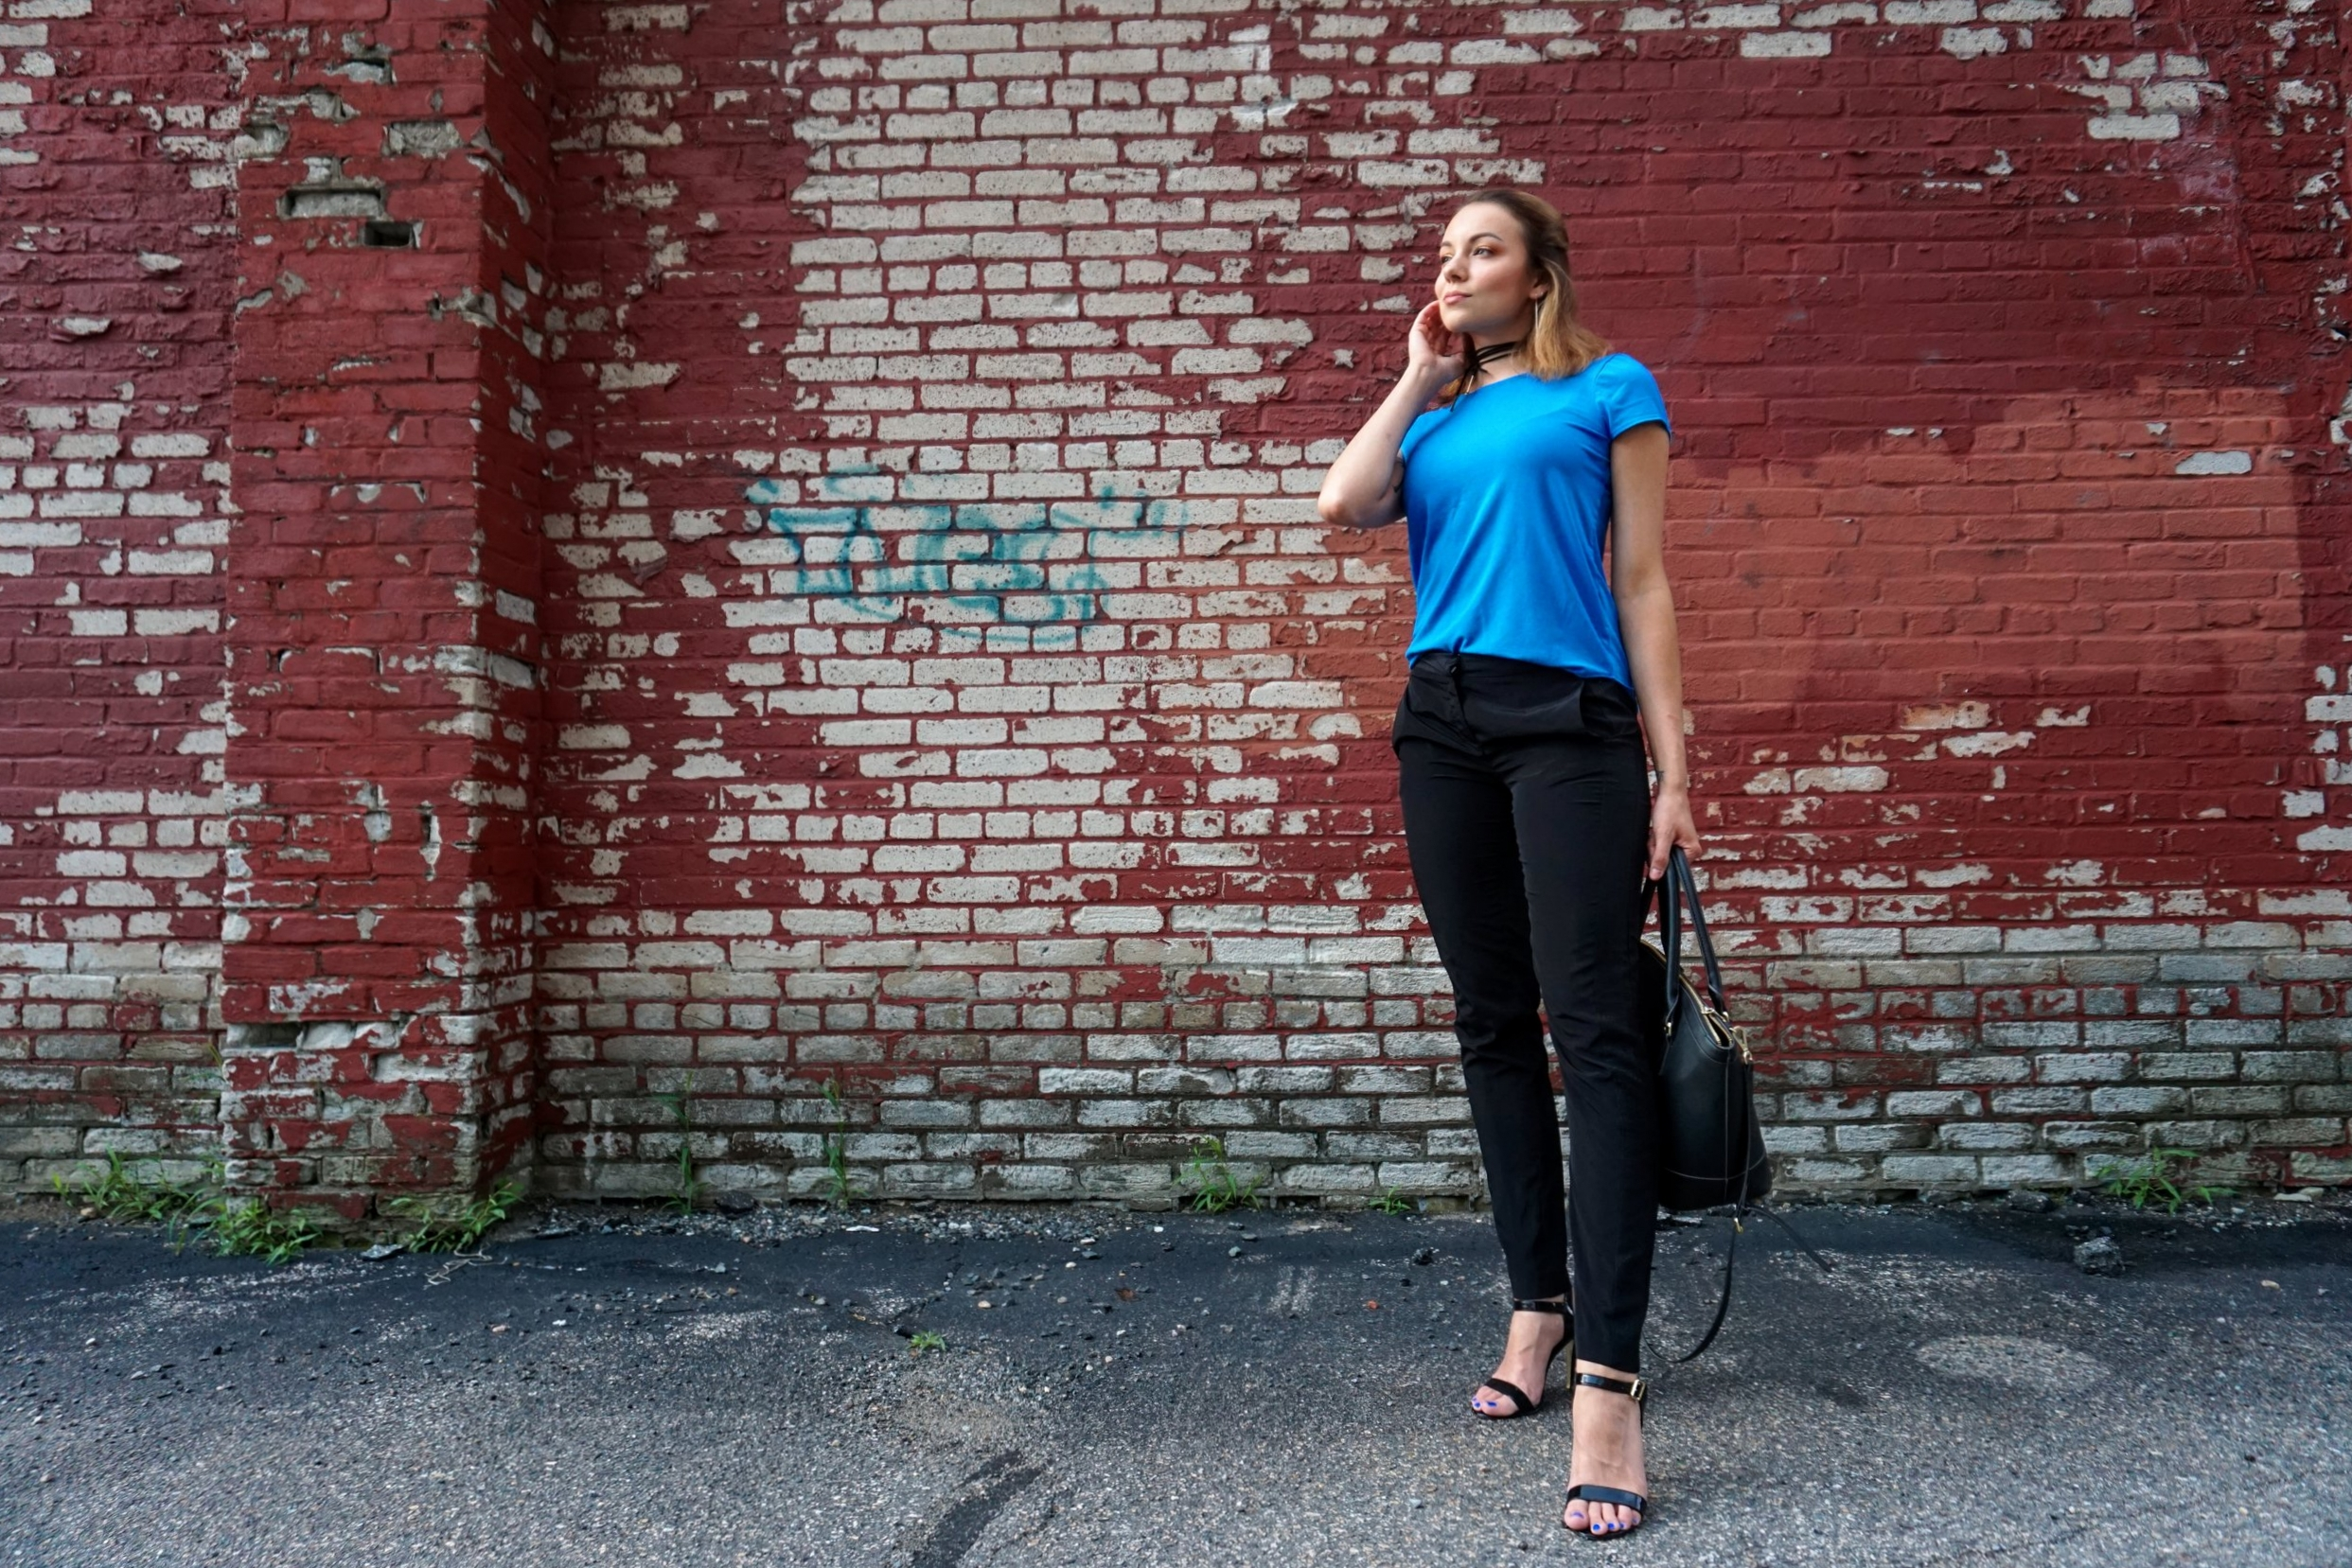 Casual outfit of the day: blue casual top, black straight pants, black high heeled sandals, black bag, and a black choker.